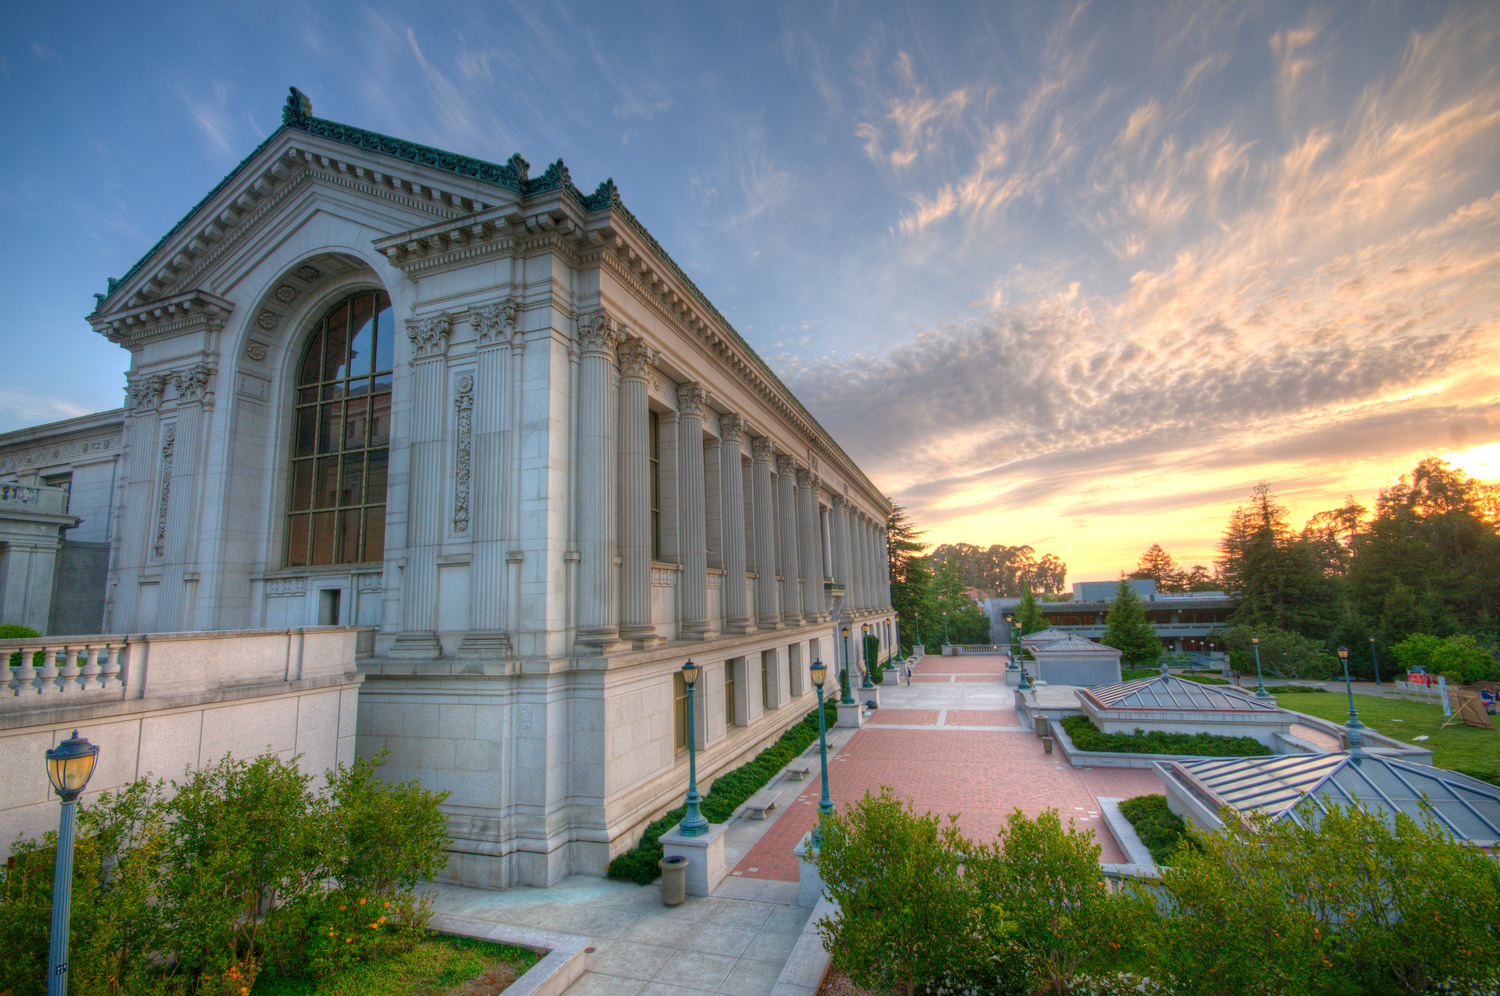 UC Berkeley campus Tour - Take a journey through Berkeley history as you cross Sproul Plaza. Relax in the shade along Strawberry Creek. Feel the world-changing energy of over 35,000 students from around the world.